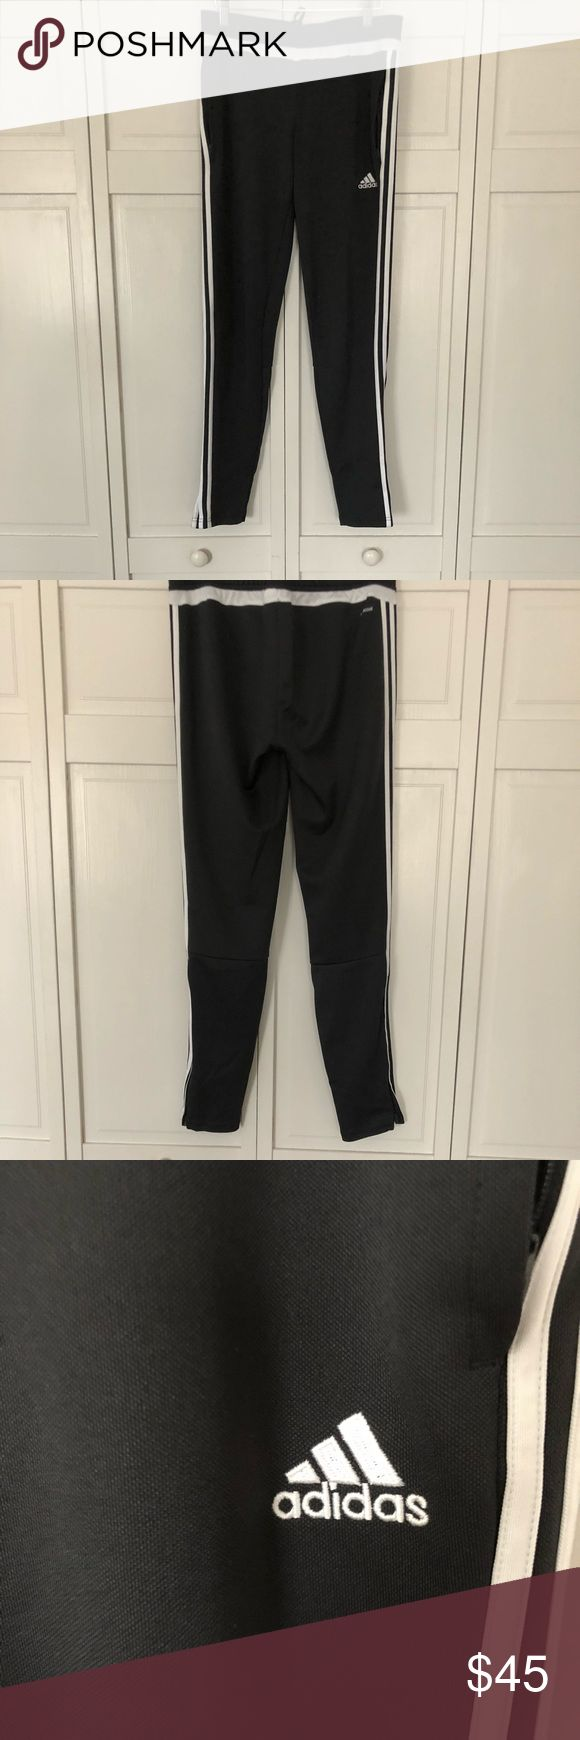 Grey Adidas Joggers- Men's M *BRAND NEW* Grey and White Adidas Joggers! Brand new, never worn! Men's medium! adidas Pants Track Pants & Joggers